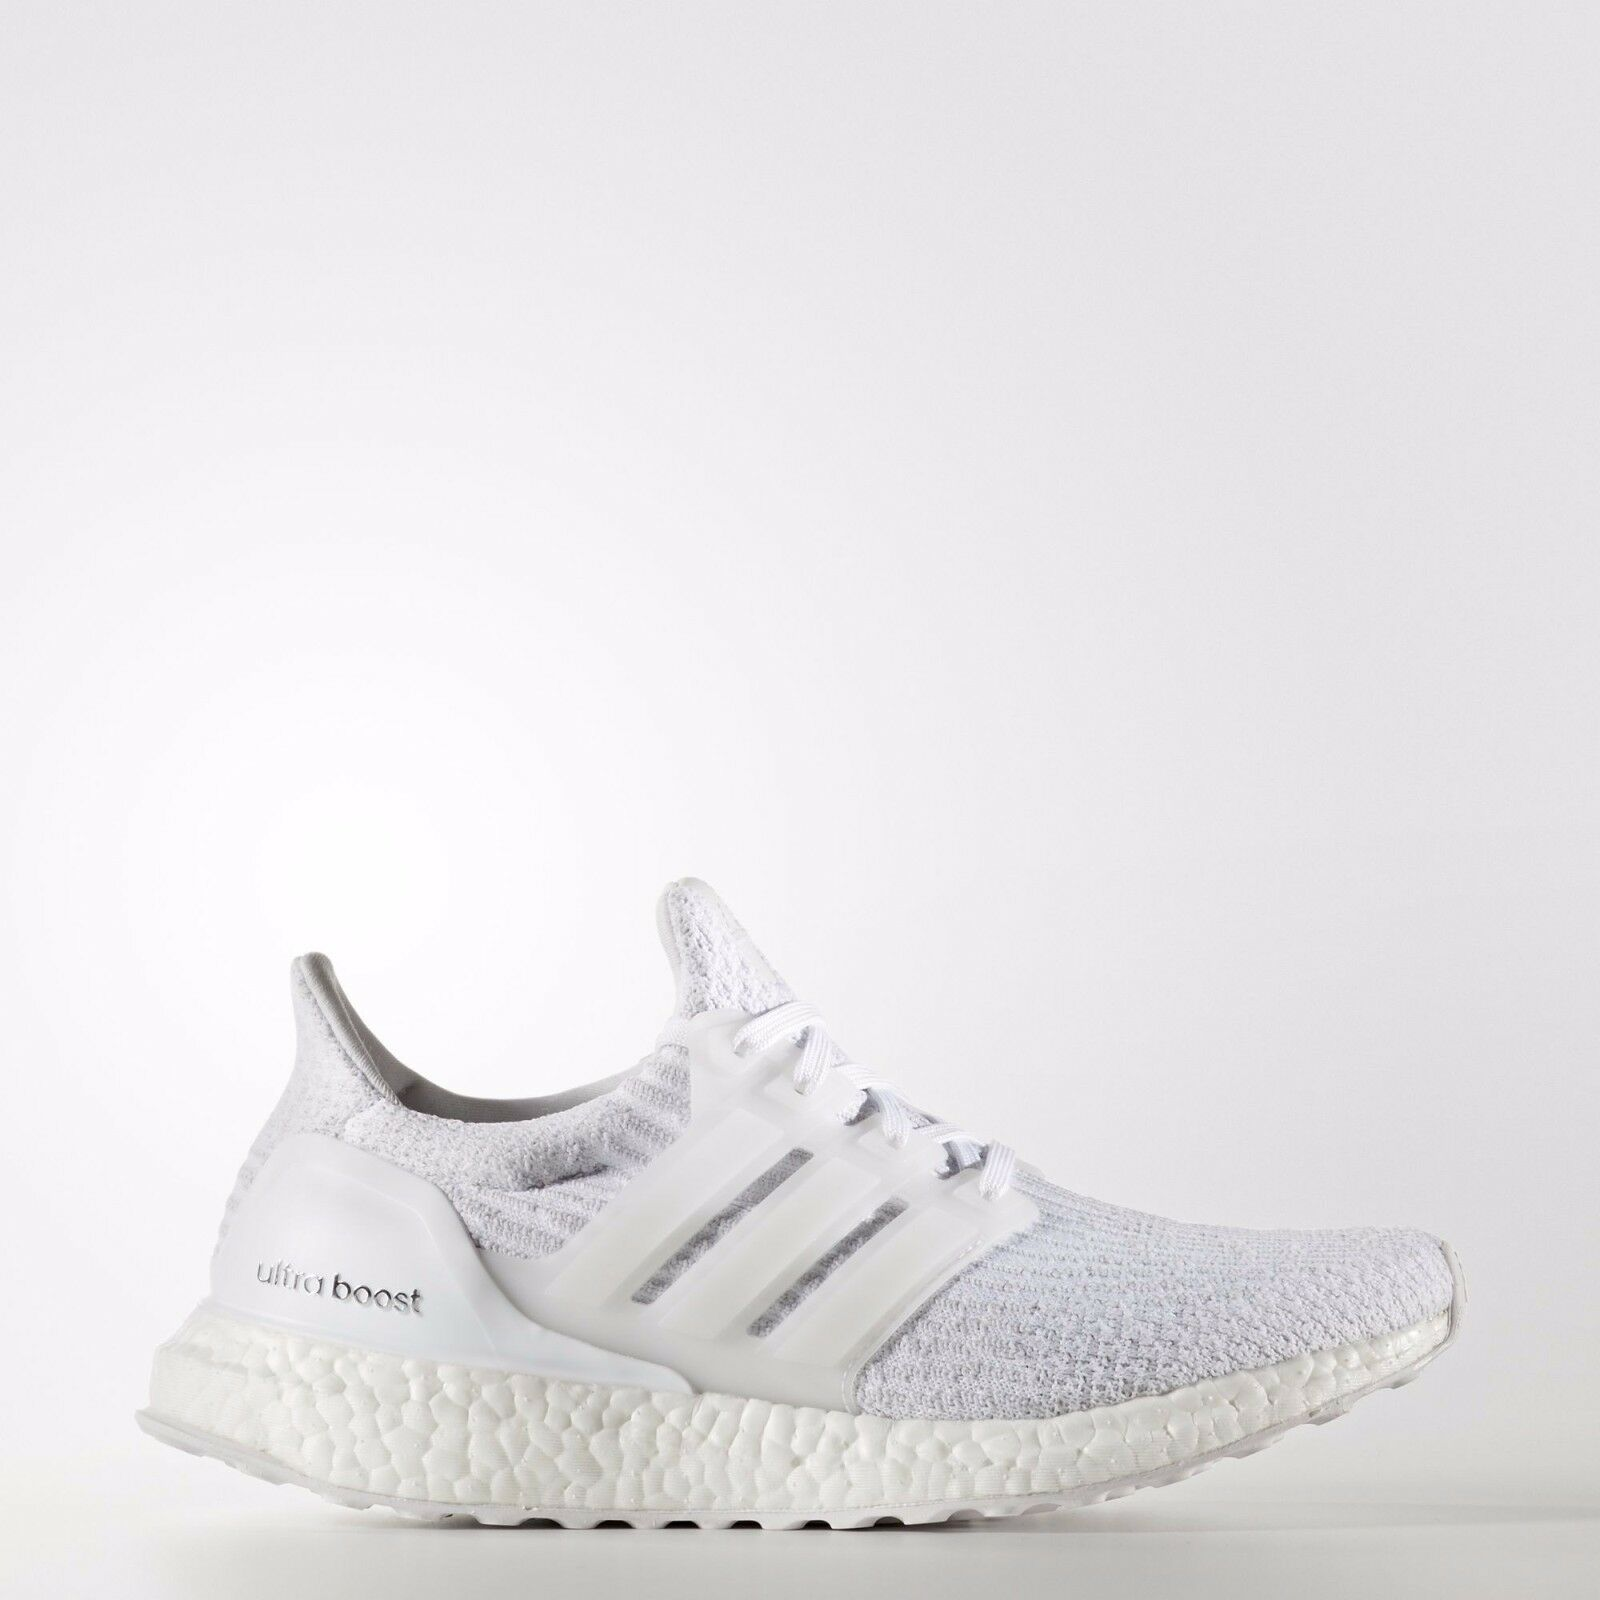 Adidas Originals Women's Ultra Boost 3.0 in White/Crystal White BA7686 Free Ship